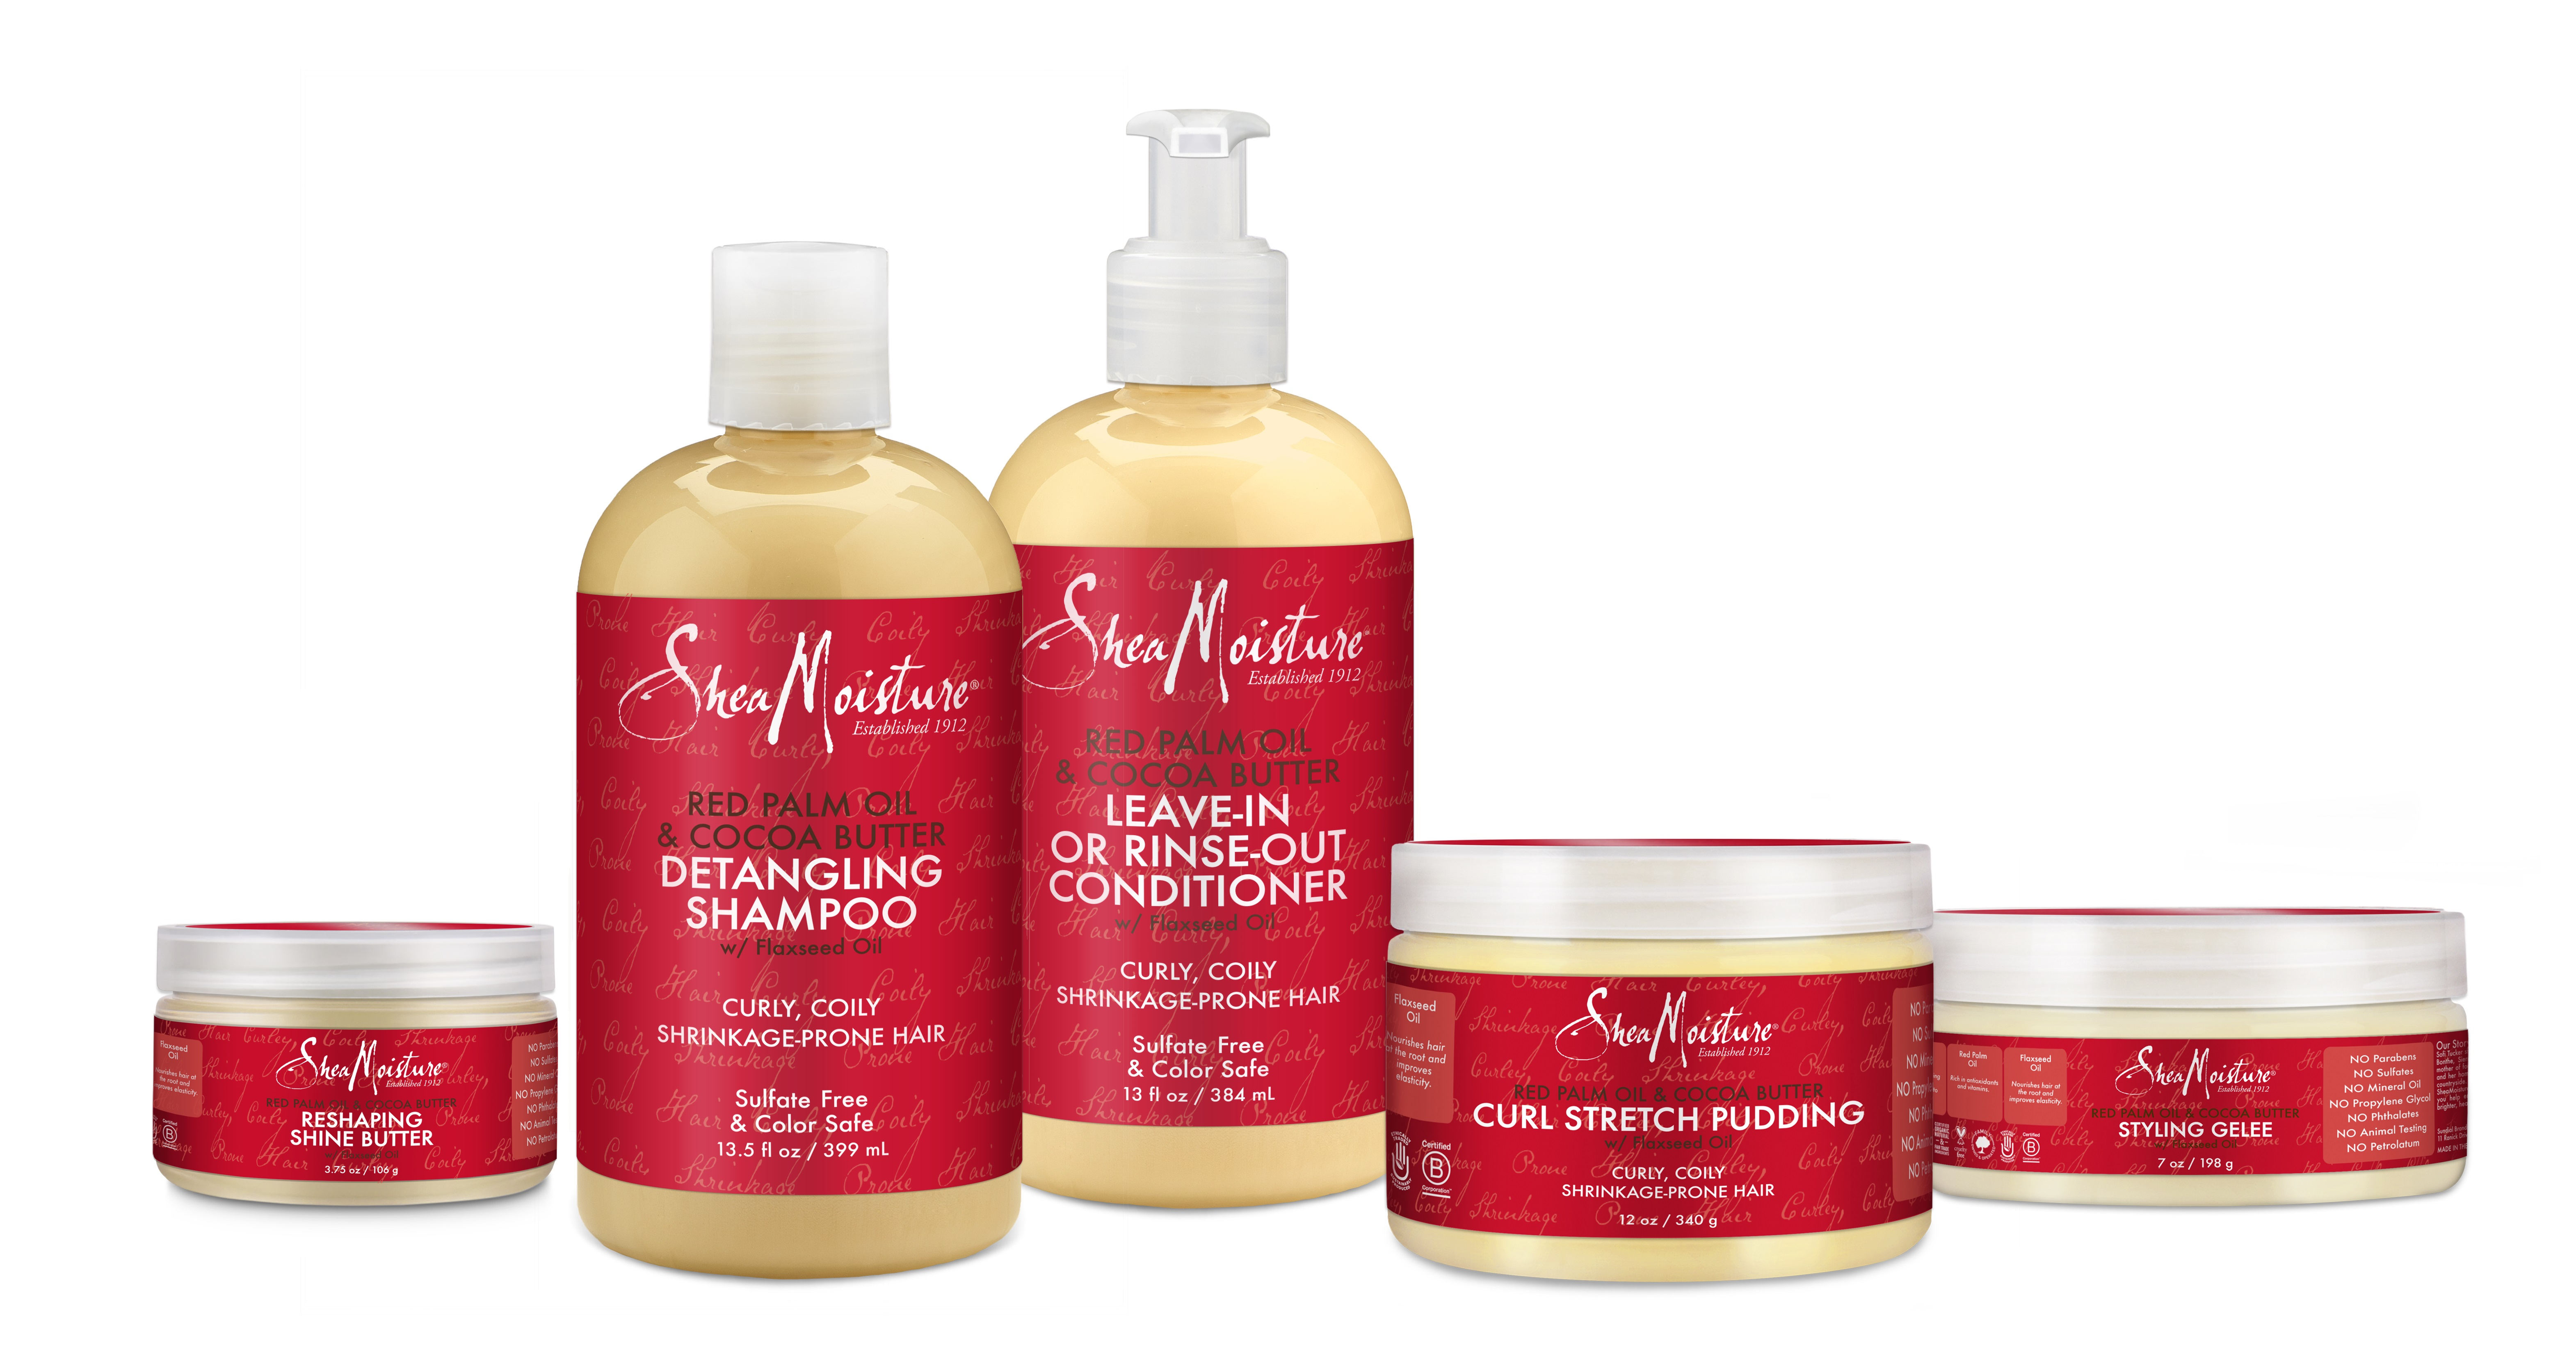 Shea Moisture Red Palm Oil & Cocoa Butter